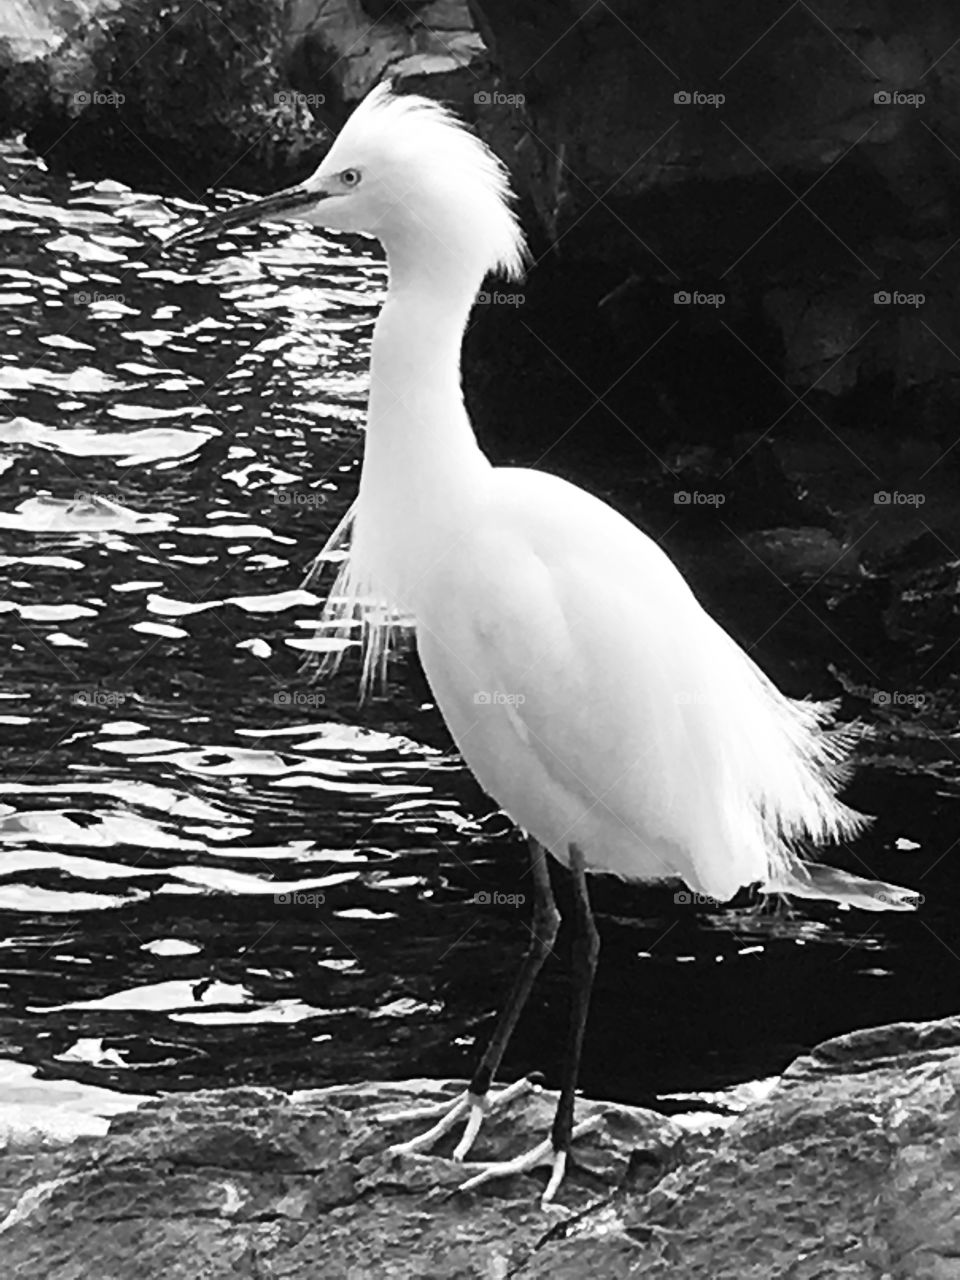 White Florida Heron at SeaWorld Orlando in black and white with ruffled feathers